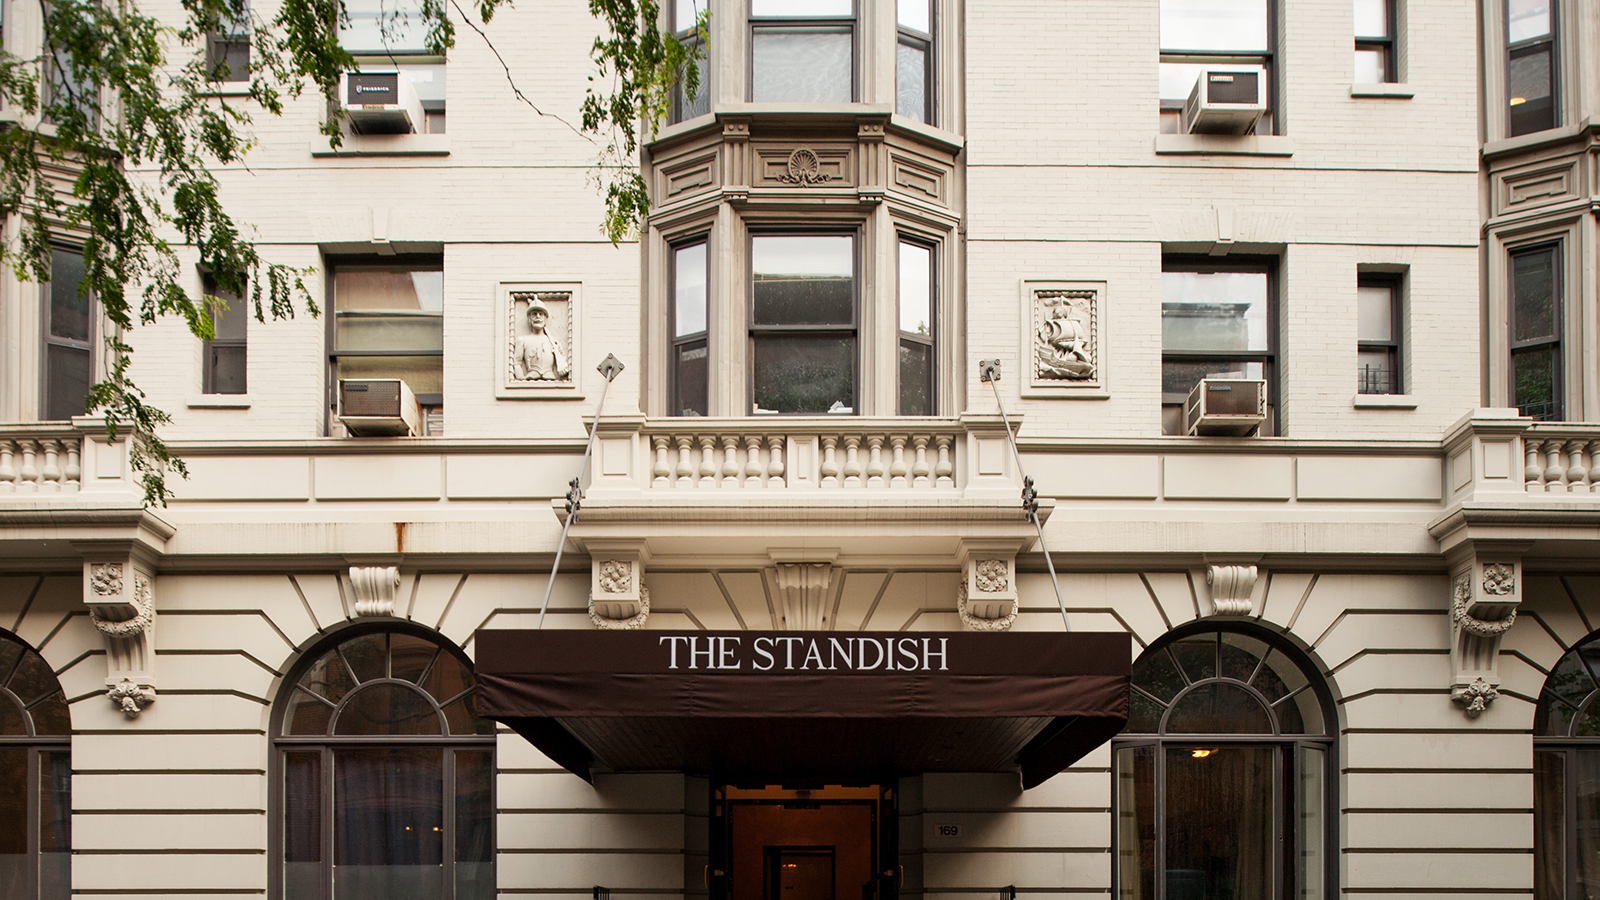 The Standish, 171 Columbia Heights